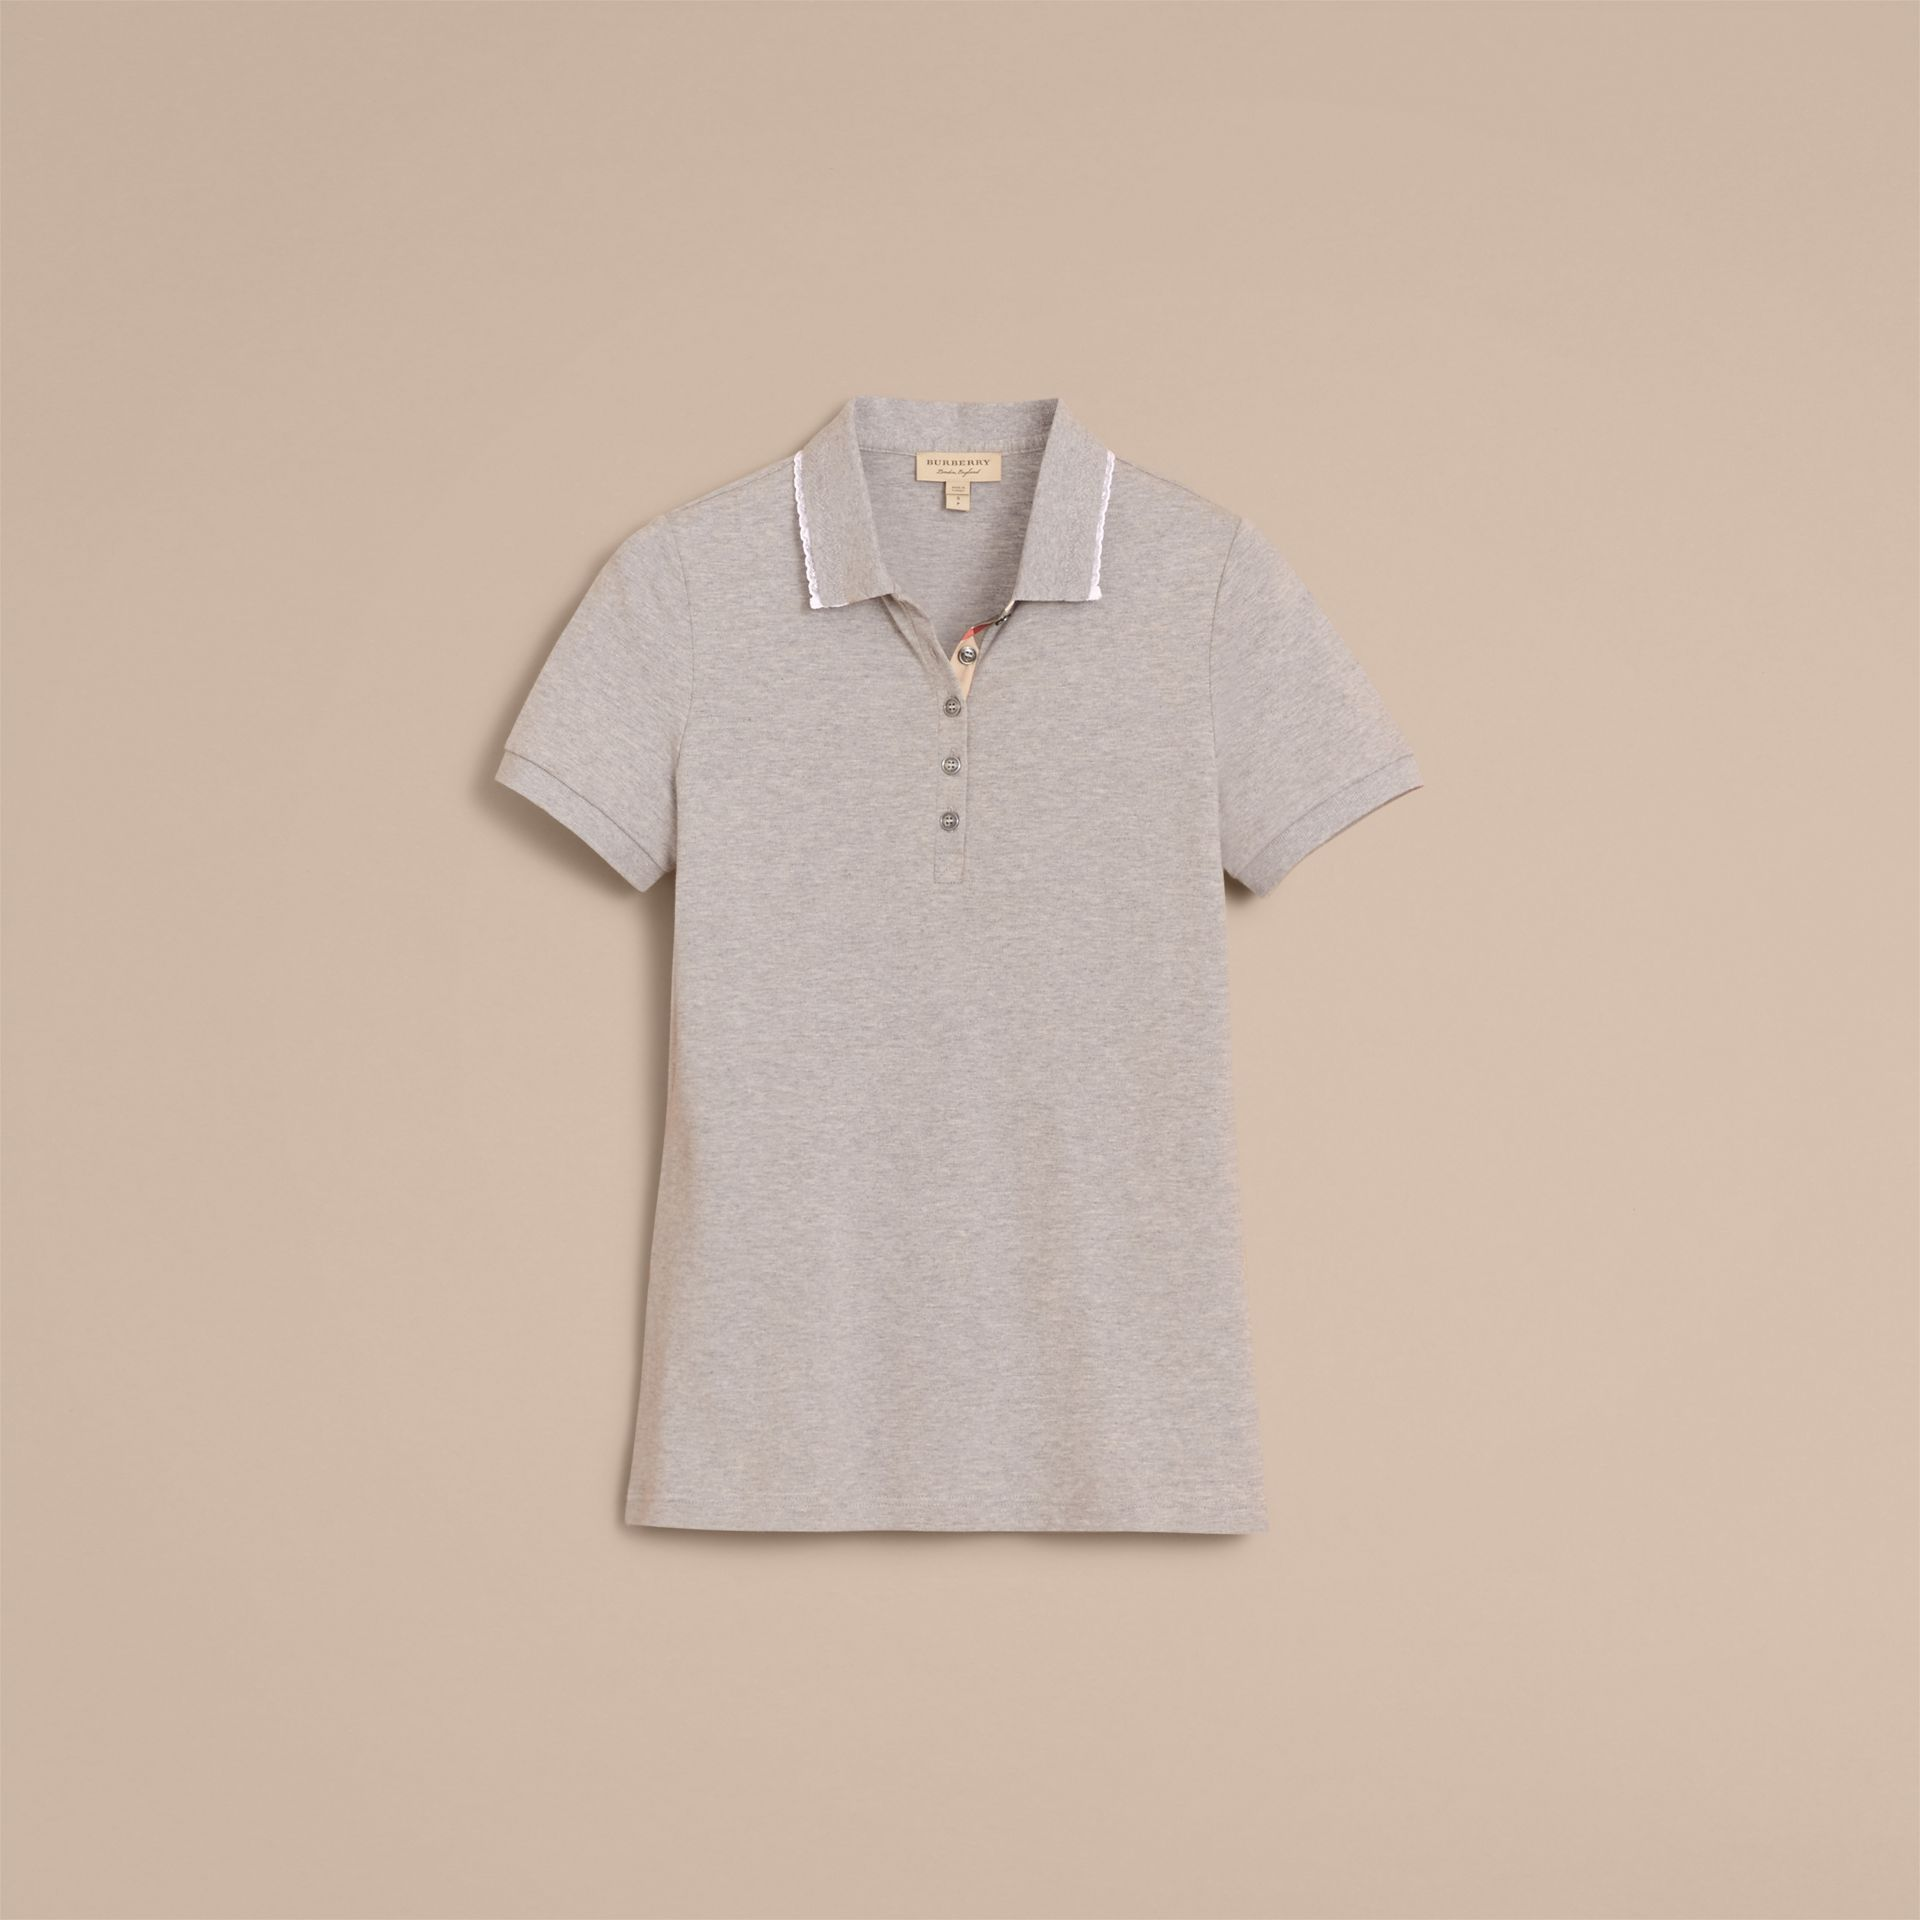 Lace Trim Cotton Blend Polo Shirt with Check Detail in Pale Grey Melange - Women | Burberry Singapore - gallery image 4